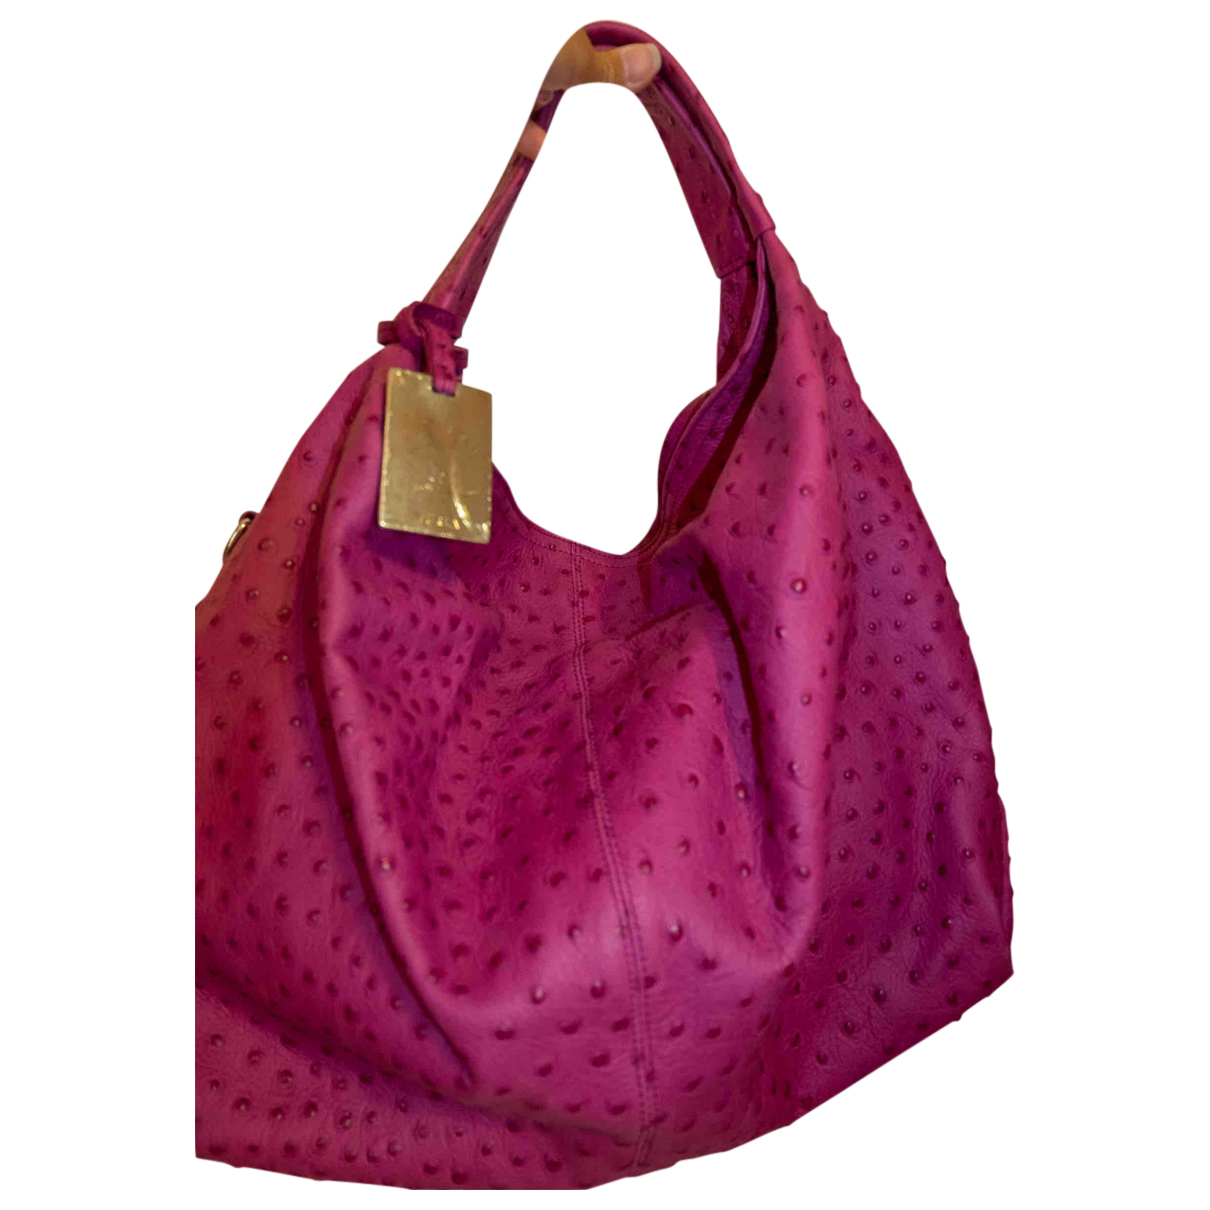 Furla N Purple Leather handbag for Women N